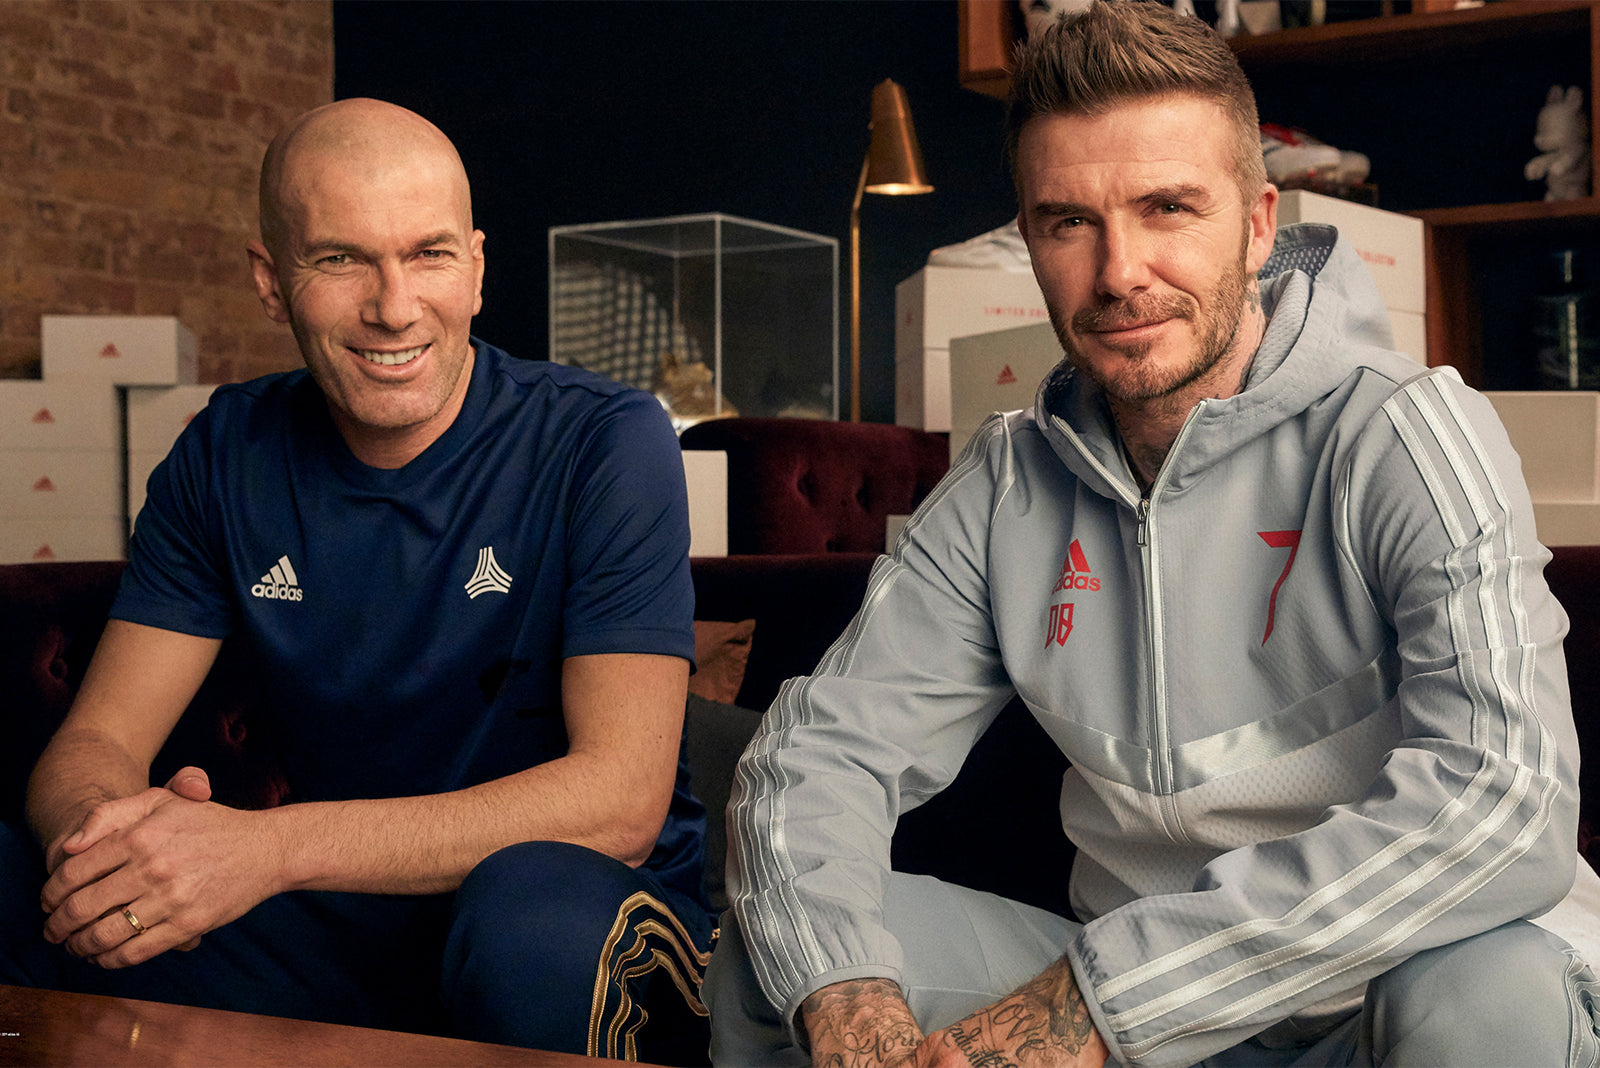 e782db764c6 adidas Football launches the 25 Years of Predator Pack. A range of boots  and apparel inspired by two of their most iconic footballers - David Beckham  and ...